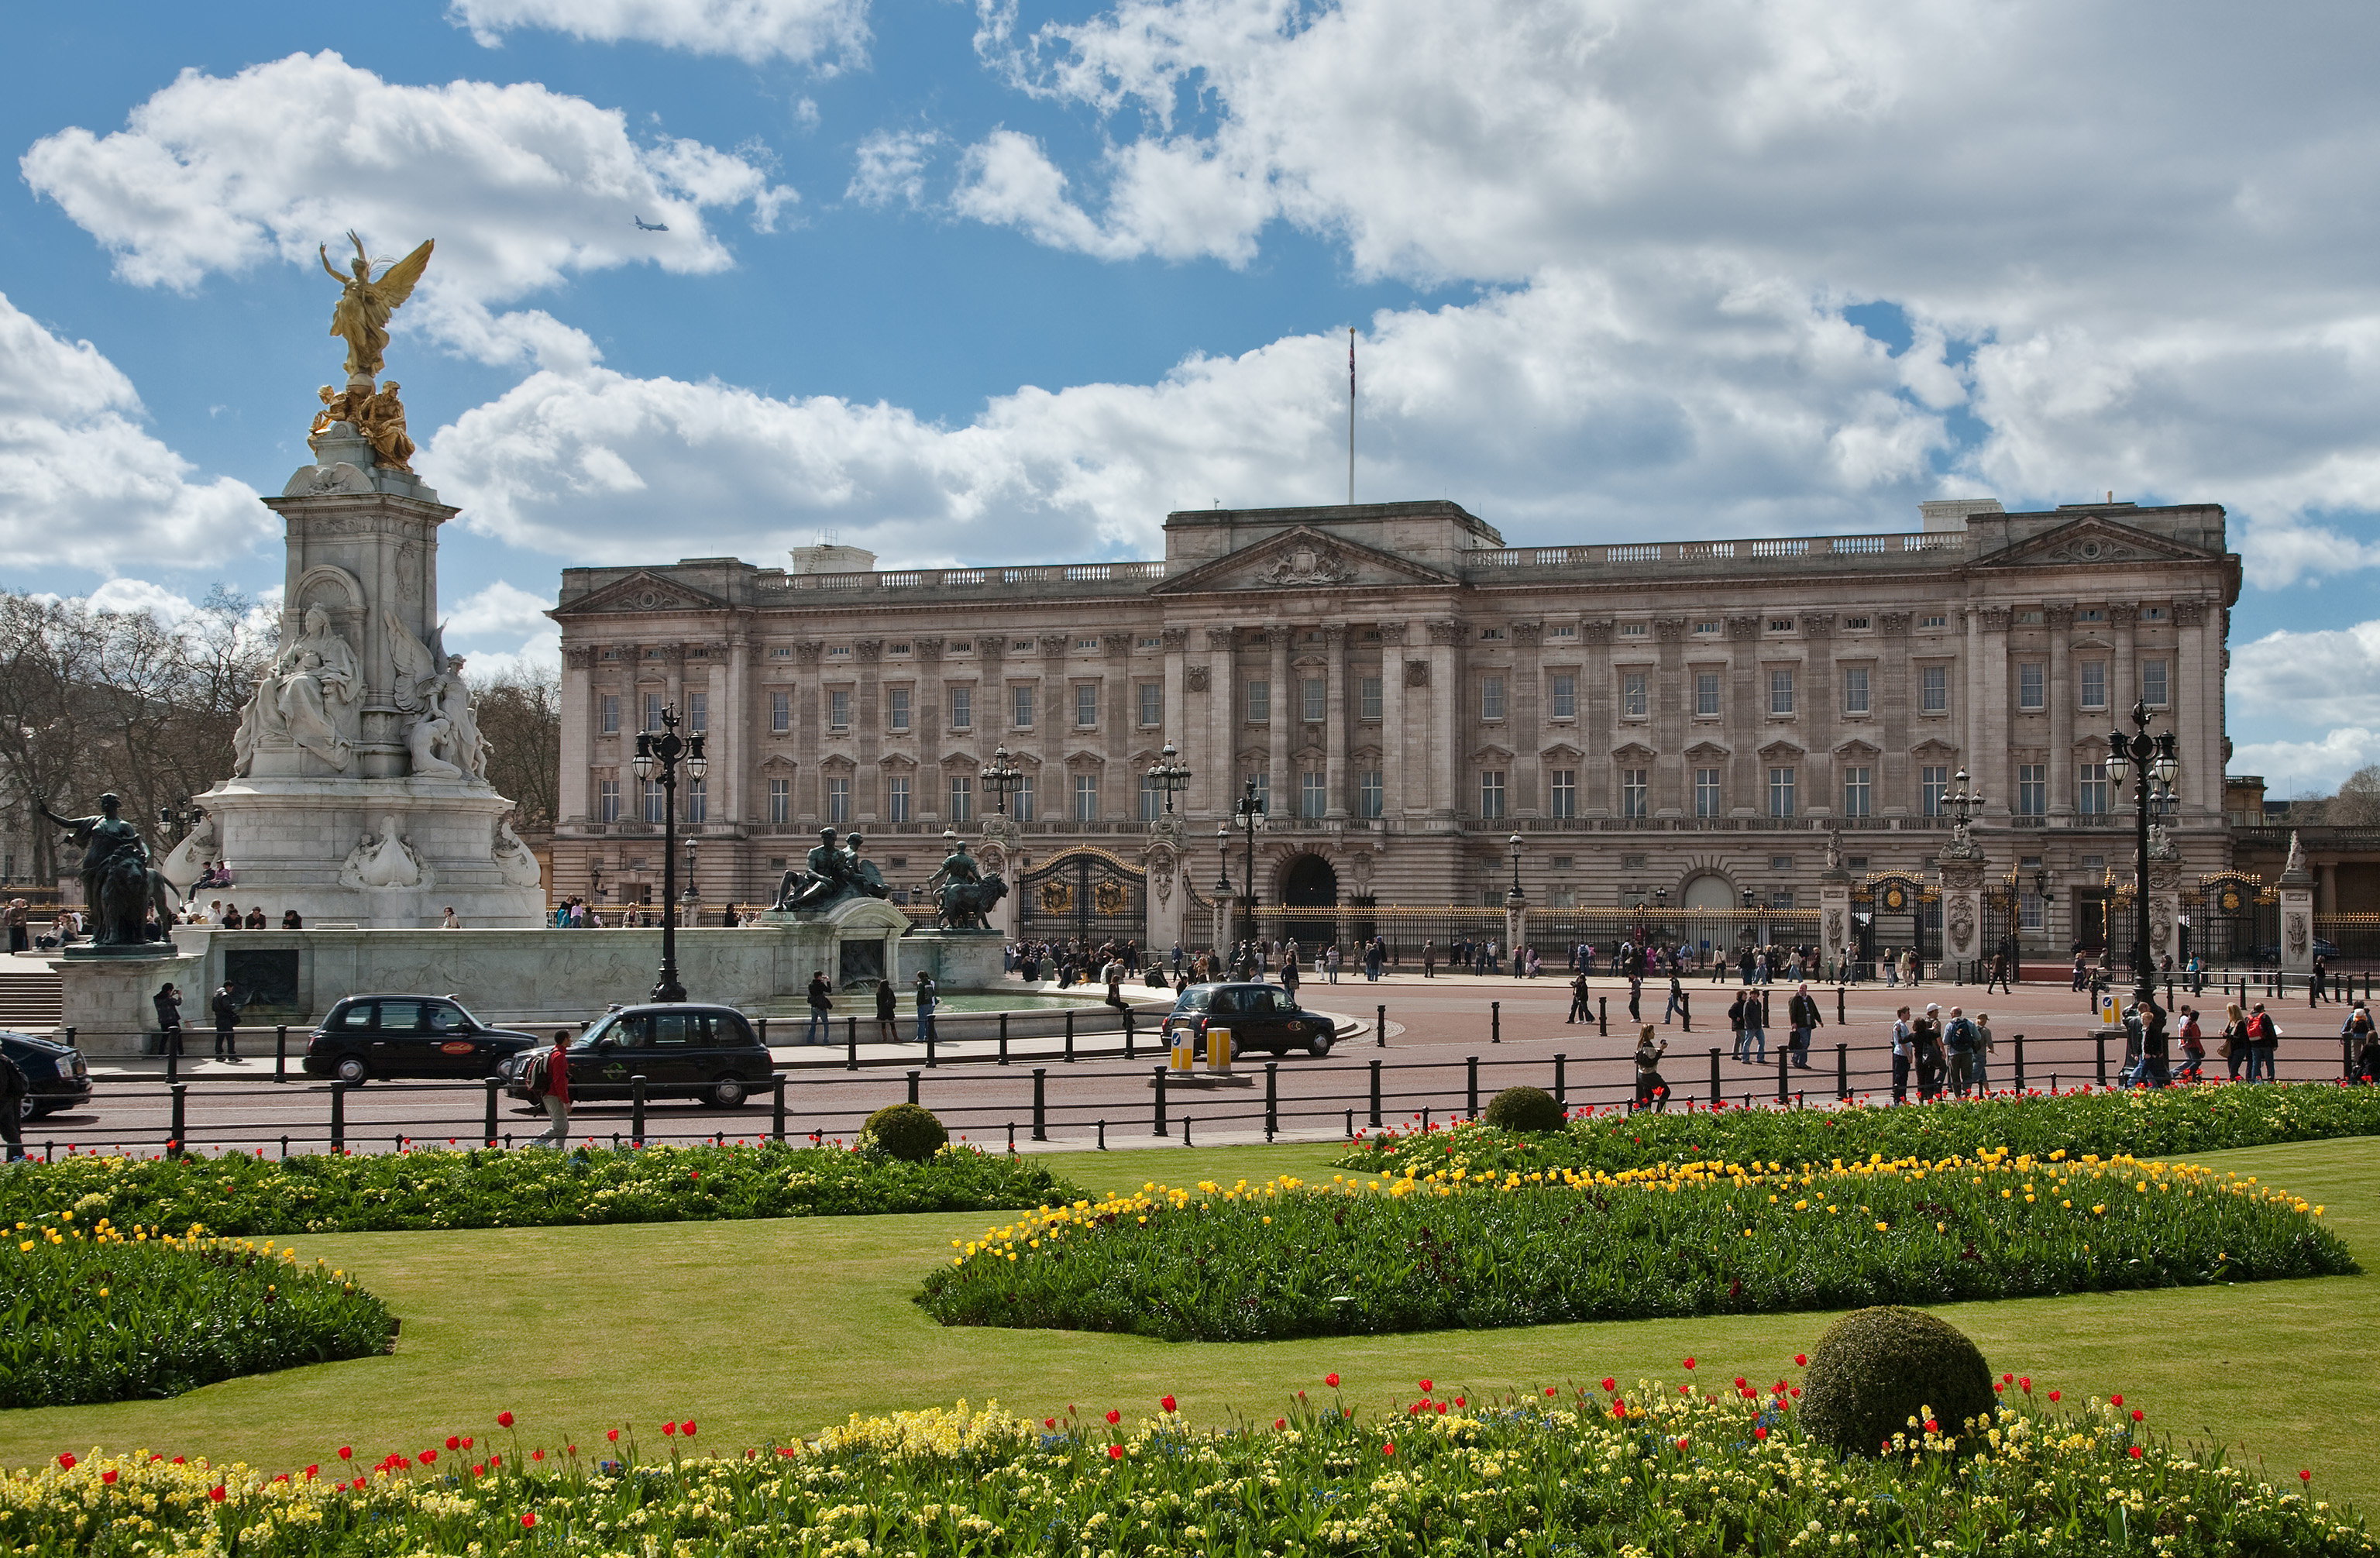 https://commons.wikimedia.org/wiki/File:Buckingham_Palace,_London_-_April_2009.jpg